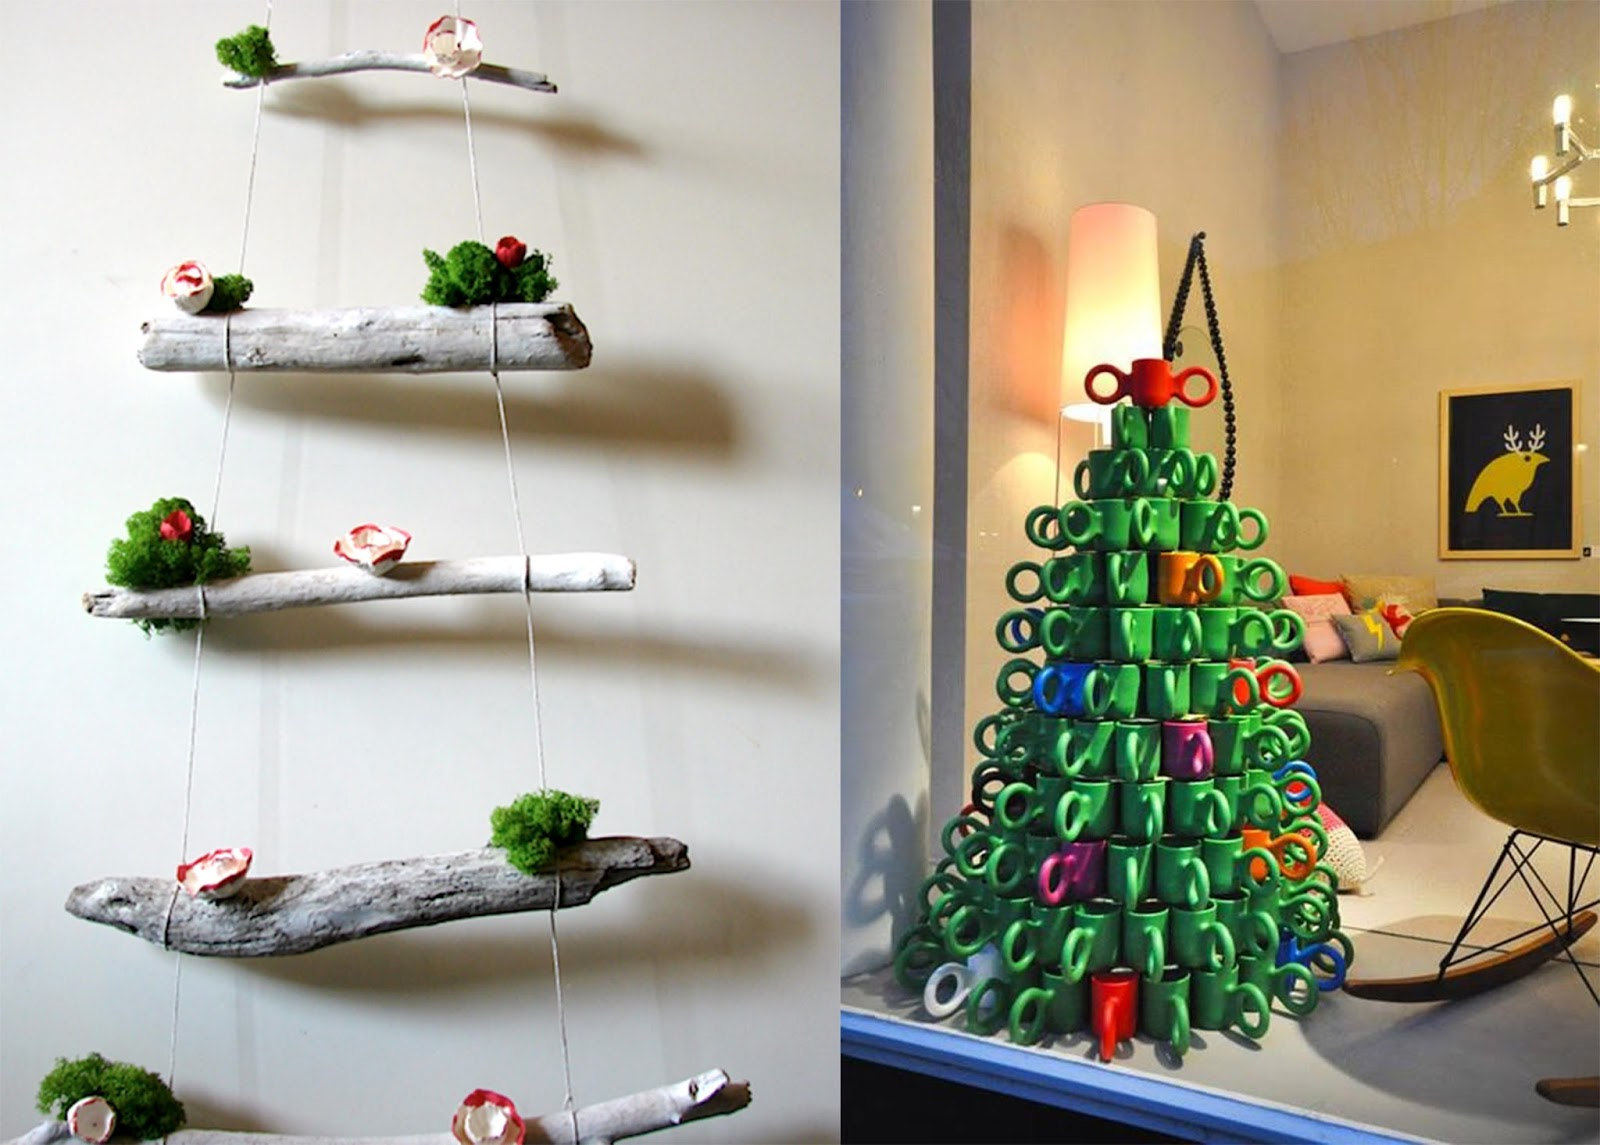 Idee originali per un natale creativo arc art blog by for Decorare soggiorno per natale